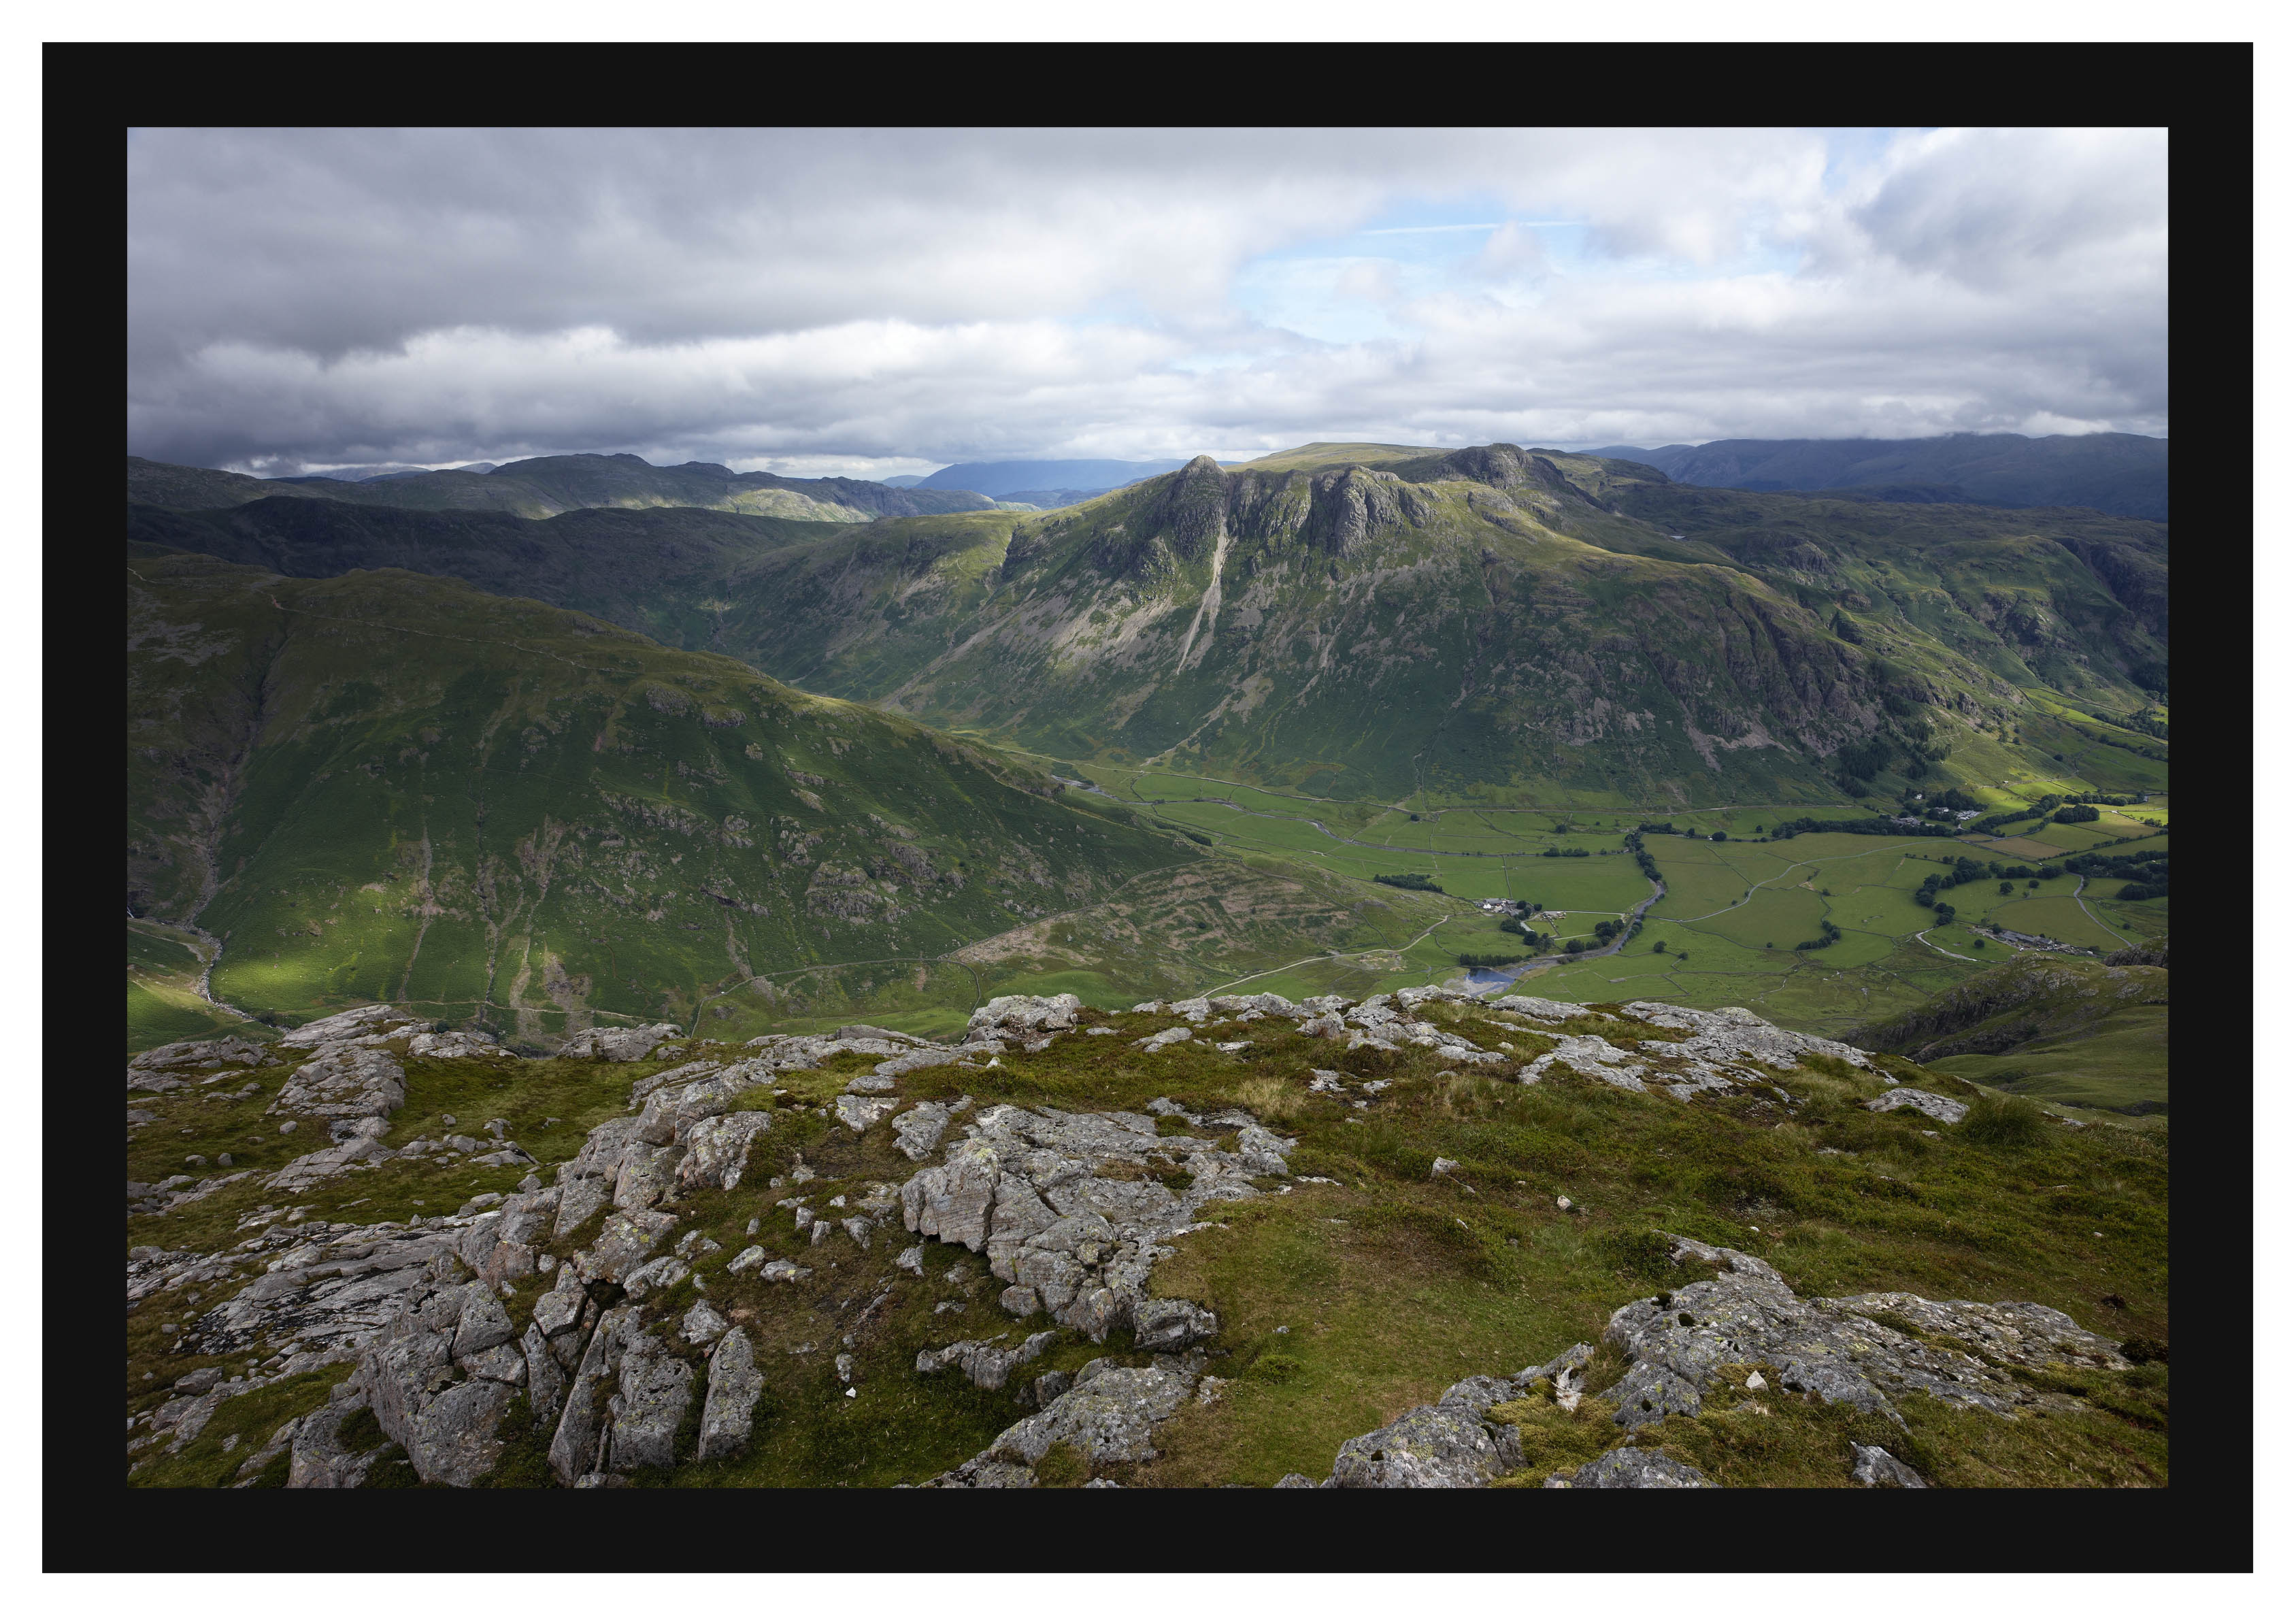 46E3983 The Langdale Pikes from Pike of Blisco